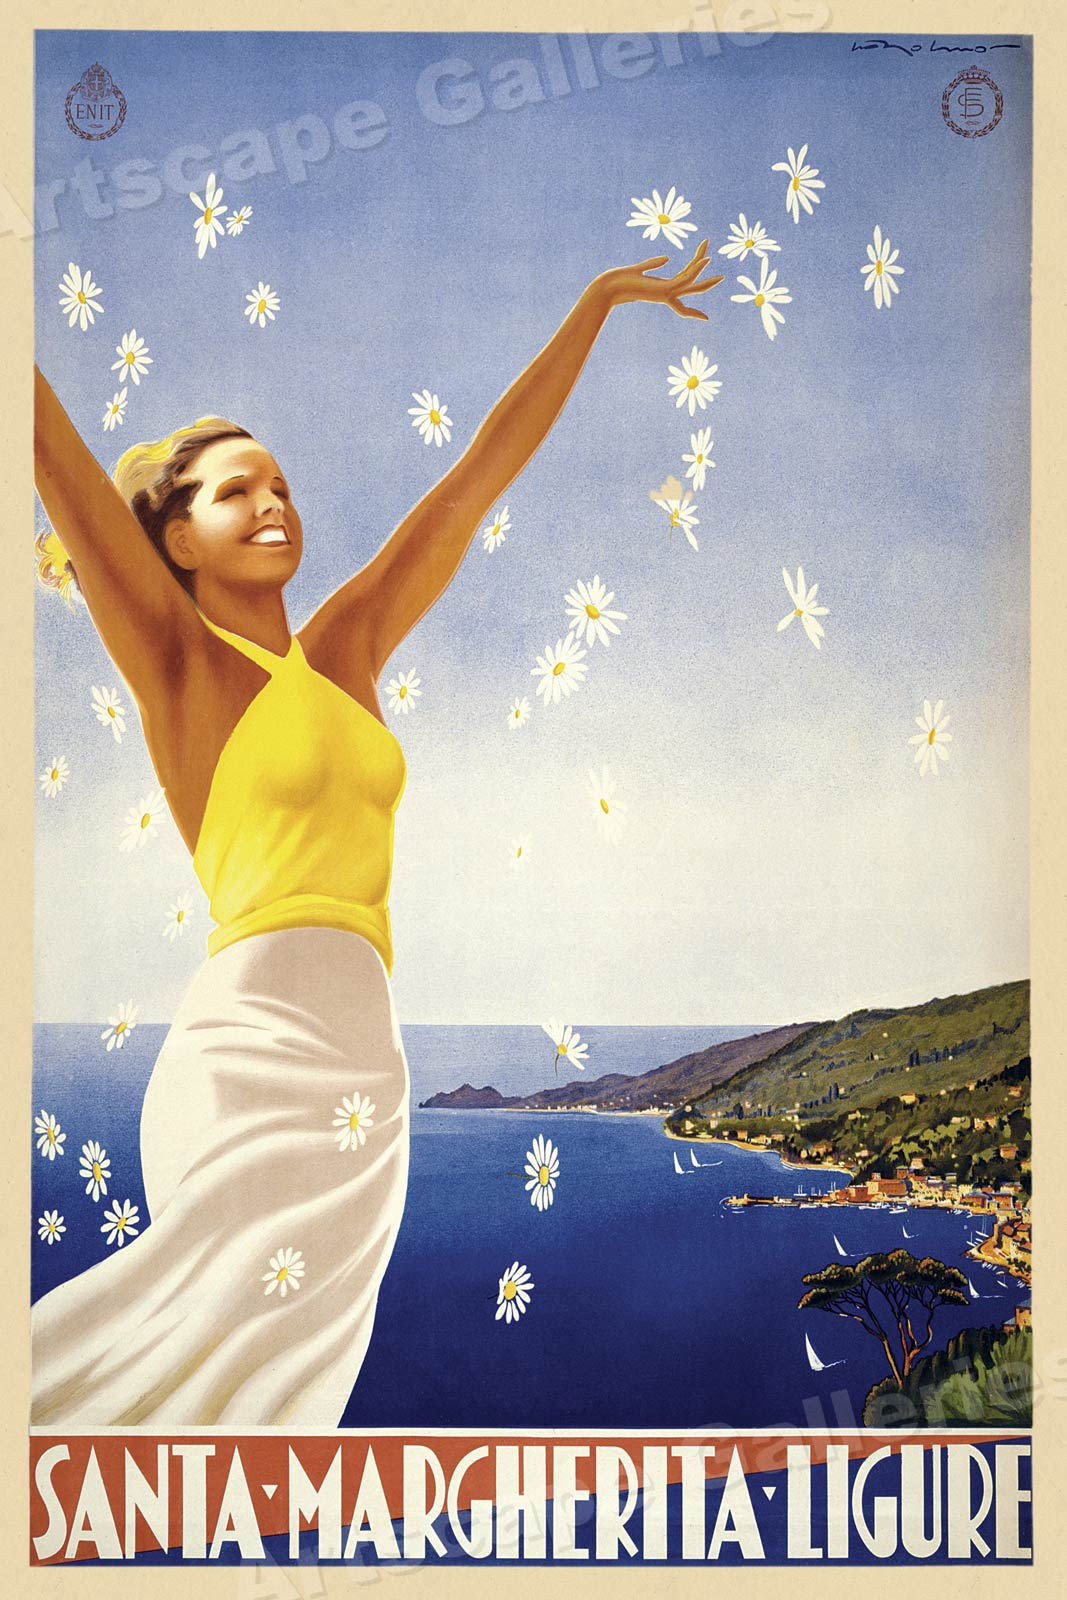 1950s Australia The Great Barrier Reef Vintage Style Travel Poster 24x36